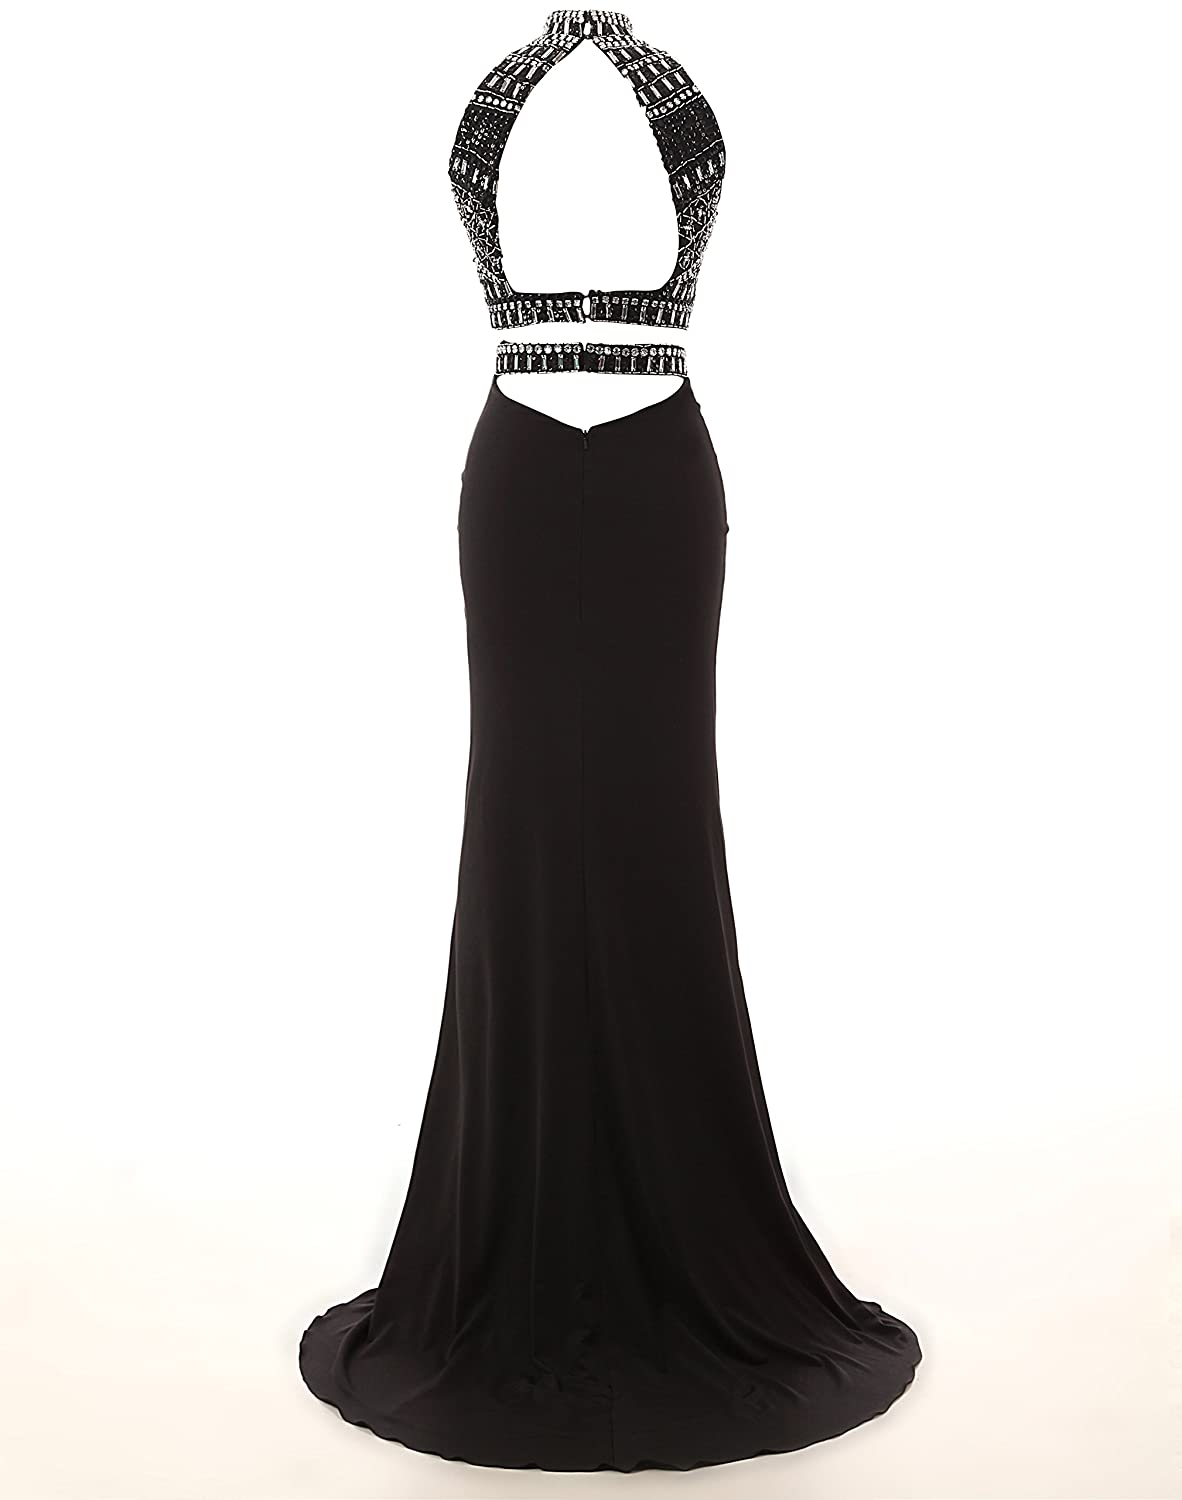 ada352cebe Amazon.com  KISSBRIDAL Women s Black Two Piece Prom Dresses Open Back  Formal Evening Gown  Clothing